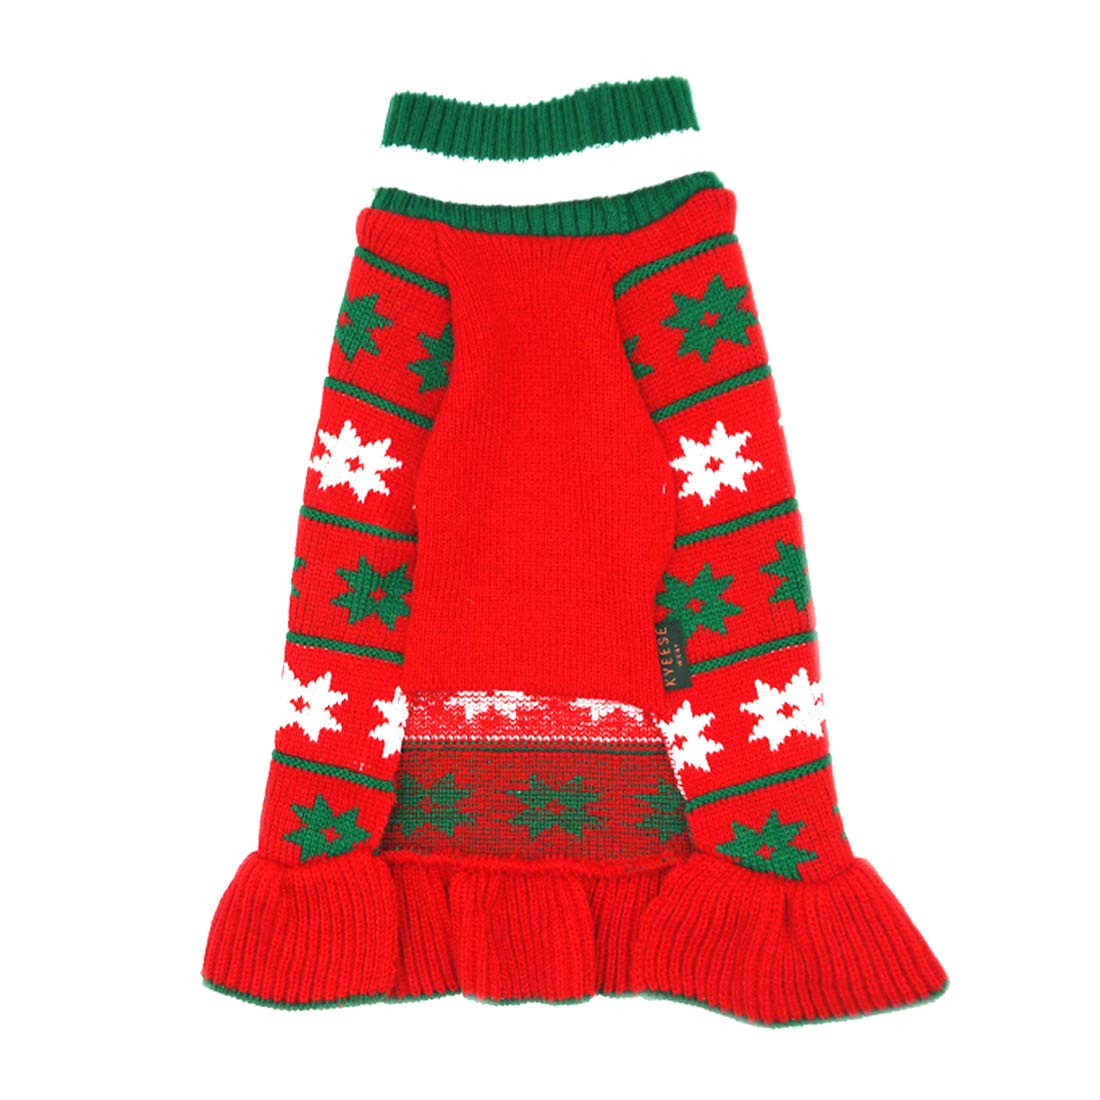 kyeese Christmas Dog Sweater Turtleneck Dogs Pullover Knitwear with Leash Hole Fall Winter Warm Pet Sweater Cat Sweater